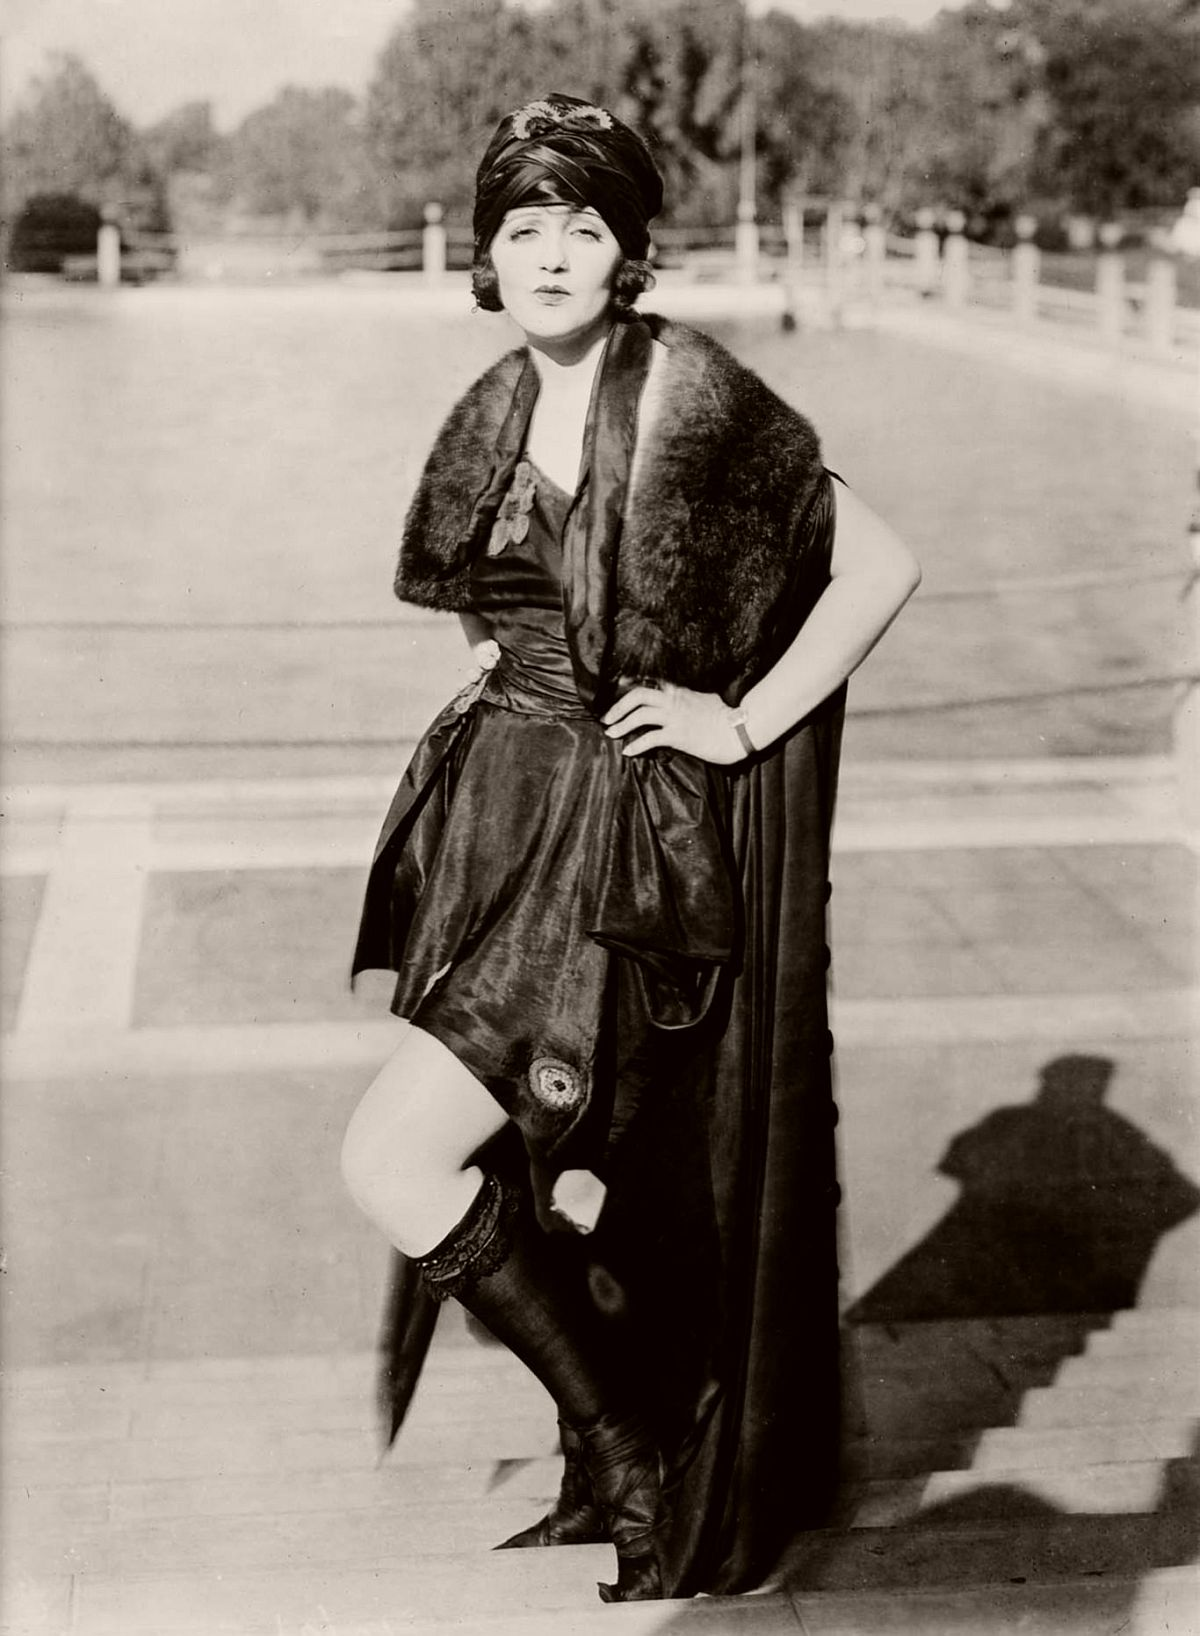 Bebe Daniels - Silent Movie Star